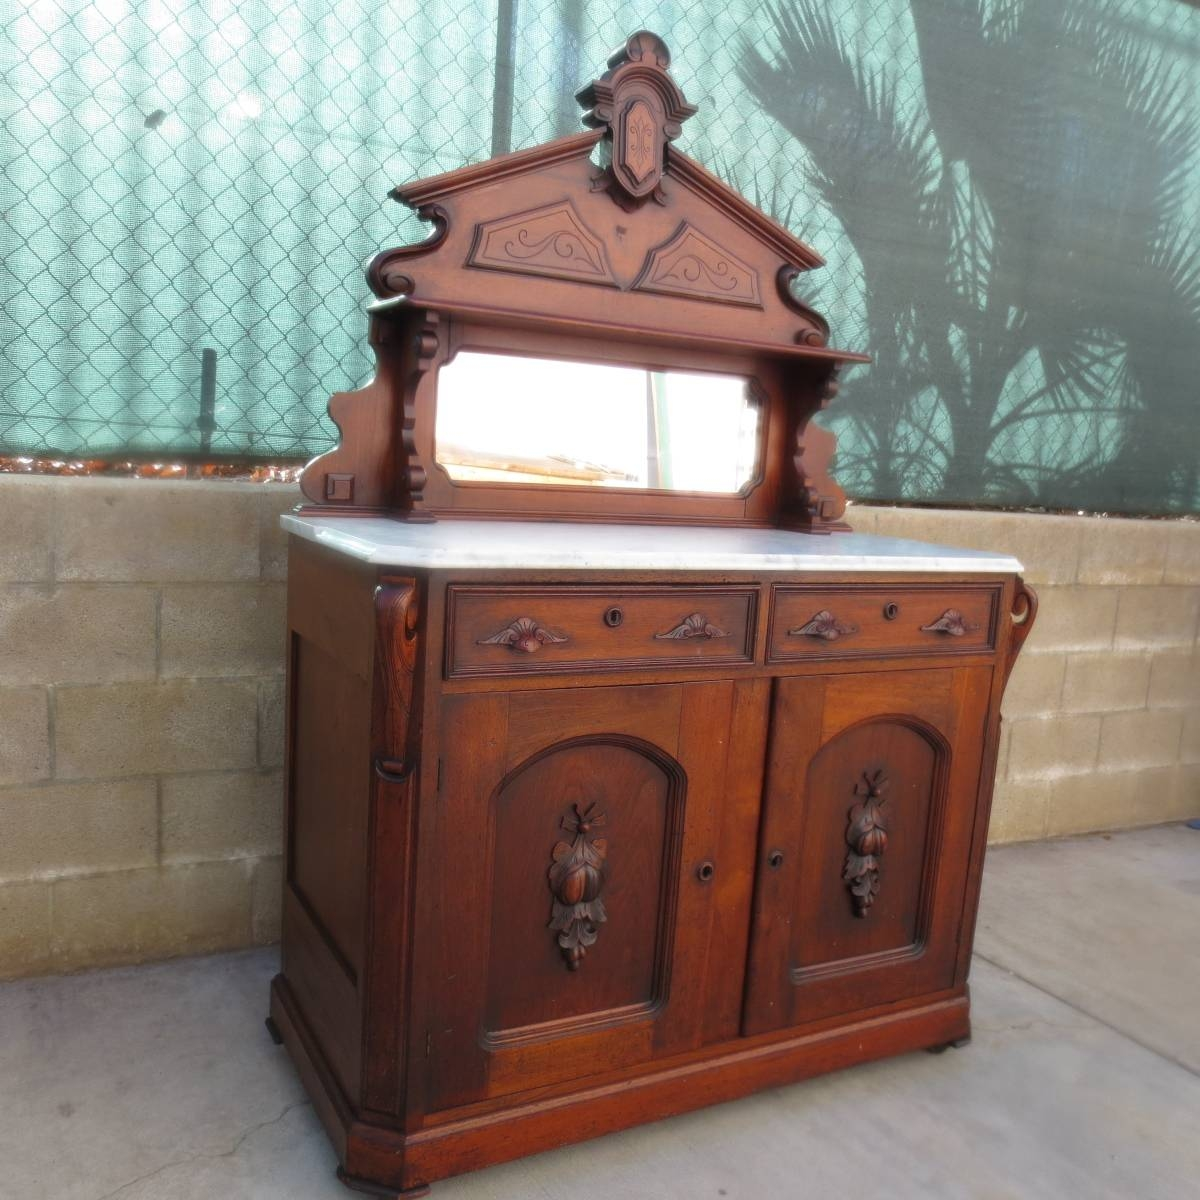 Antique Sideboards And Buffets — All Furniture : Antique in Antique Sideboards With Mirror (Image 3 of 15)